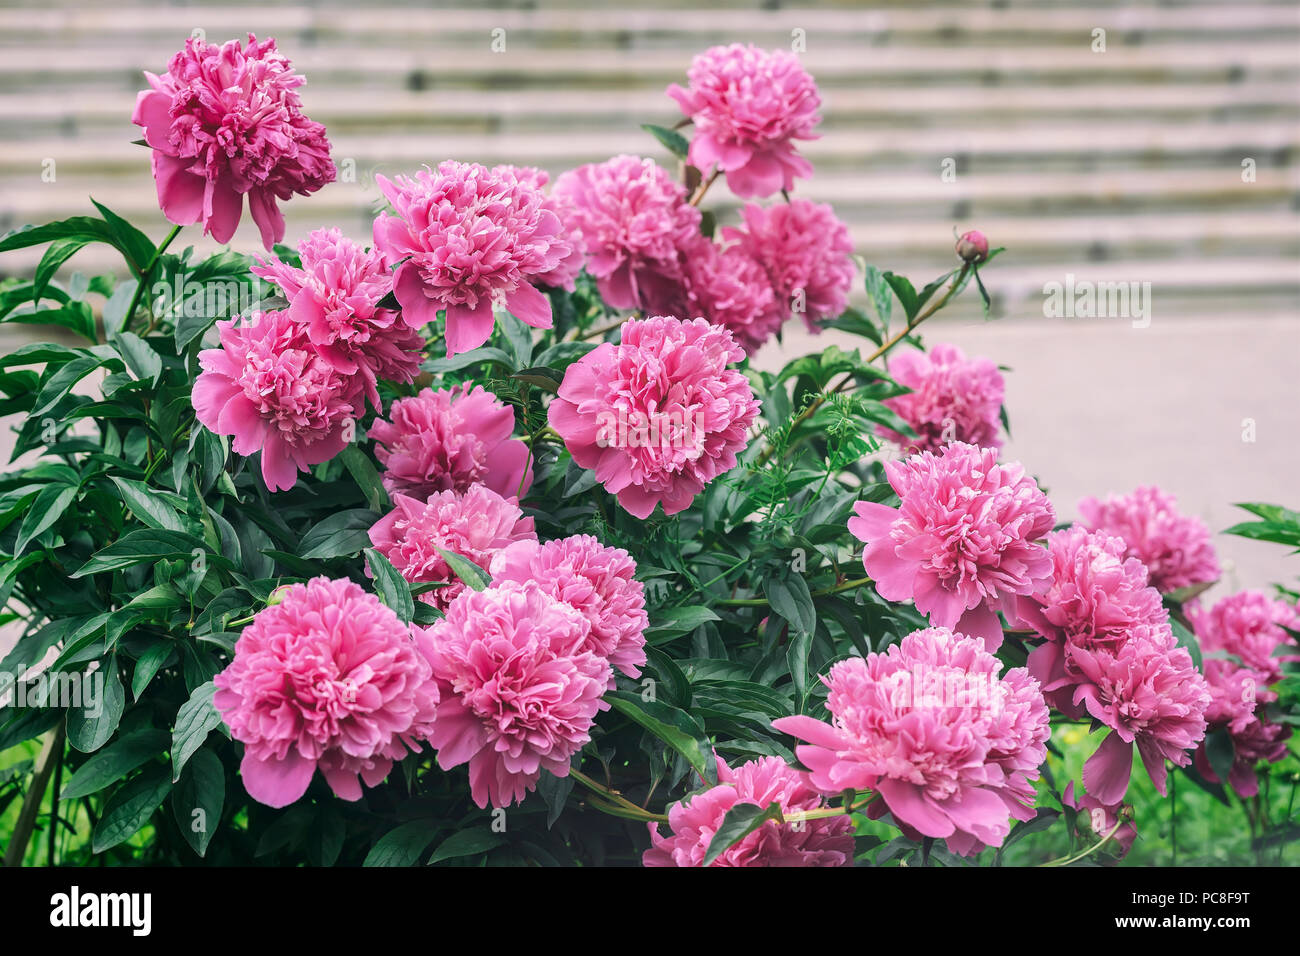 Abundant lush flowering pink purple peonies in garden traditional abundant lush flowering pink purple peonies in garden traditional floral symbol flower of riches and honour and king of the flowers mightylinksfo